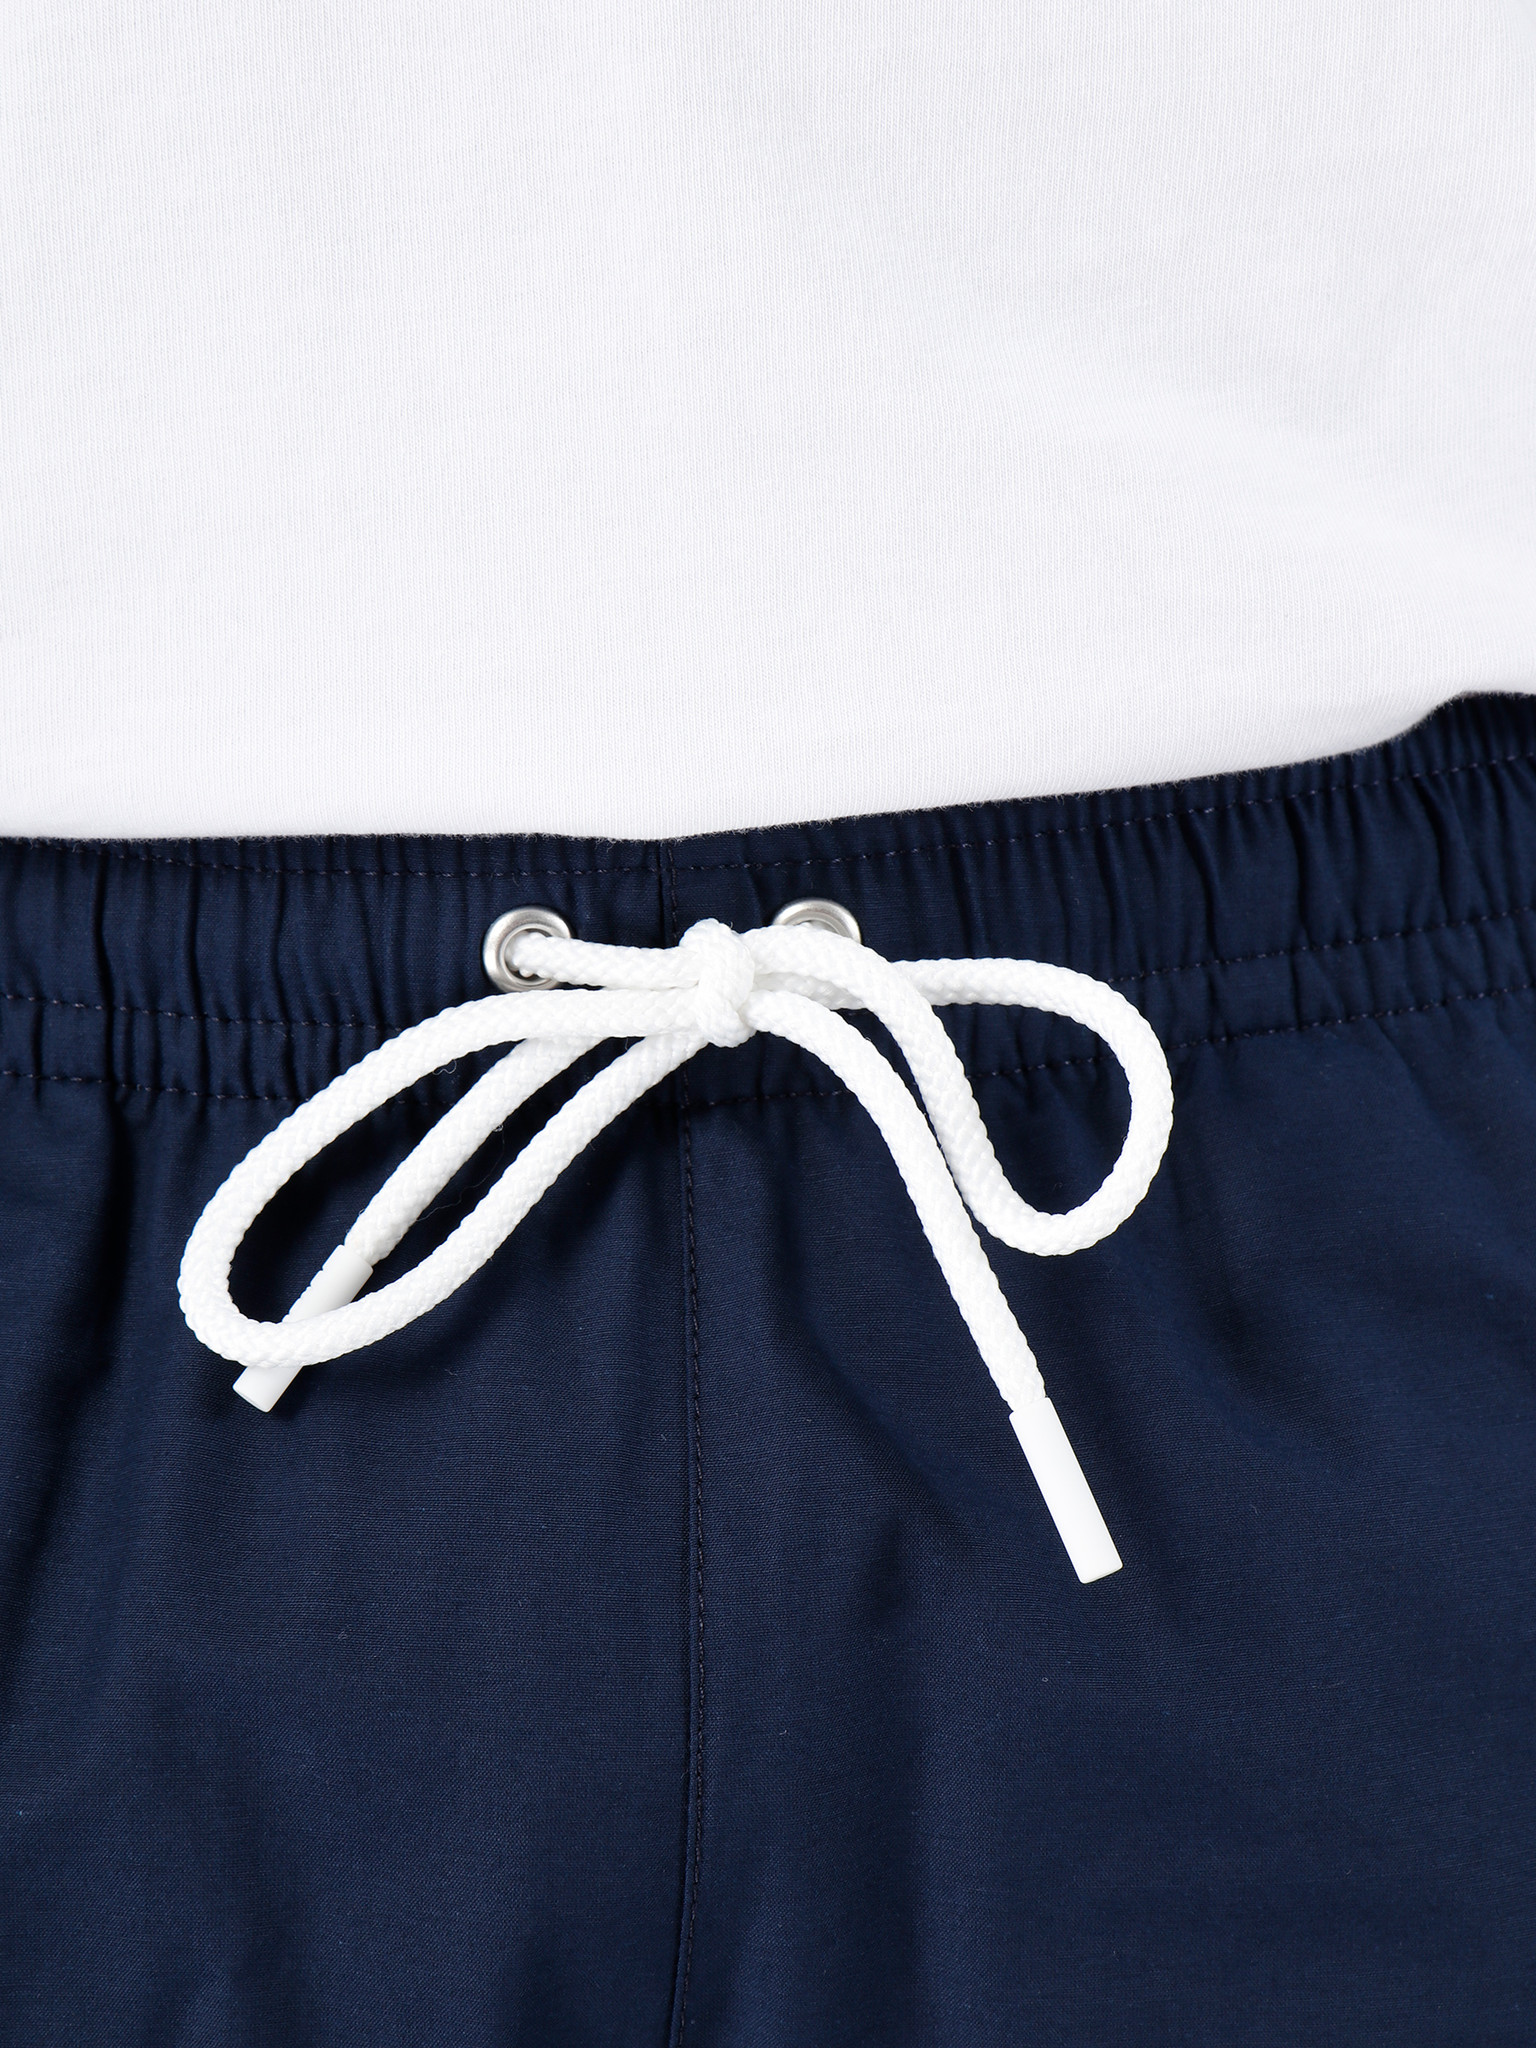 Lacoste Lacoste 1Hm1 Men'S Swimming Trunks 01 Navy Blue Creek Mh7092-91